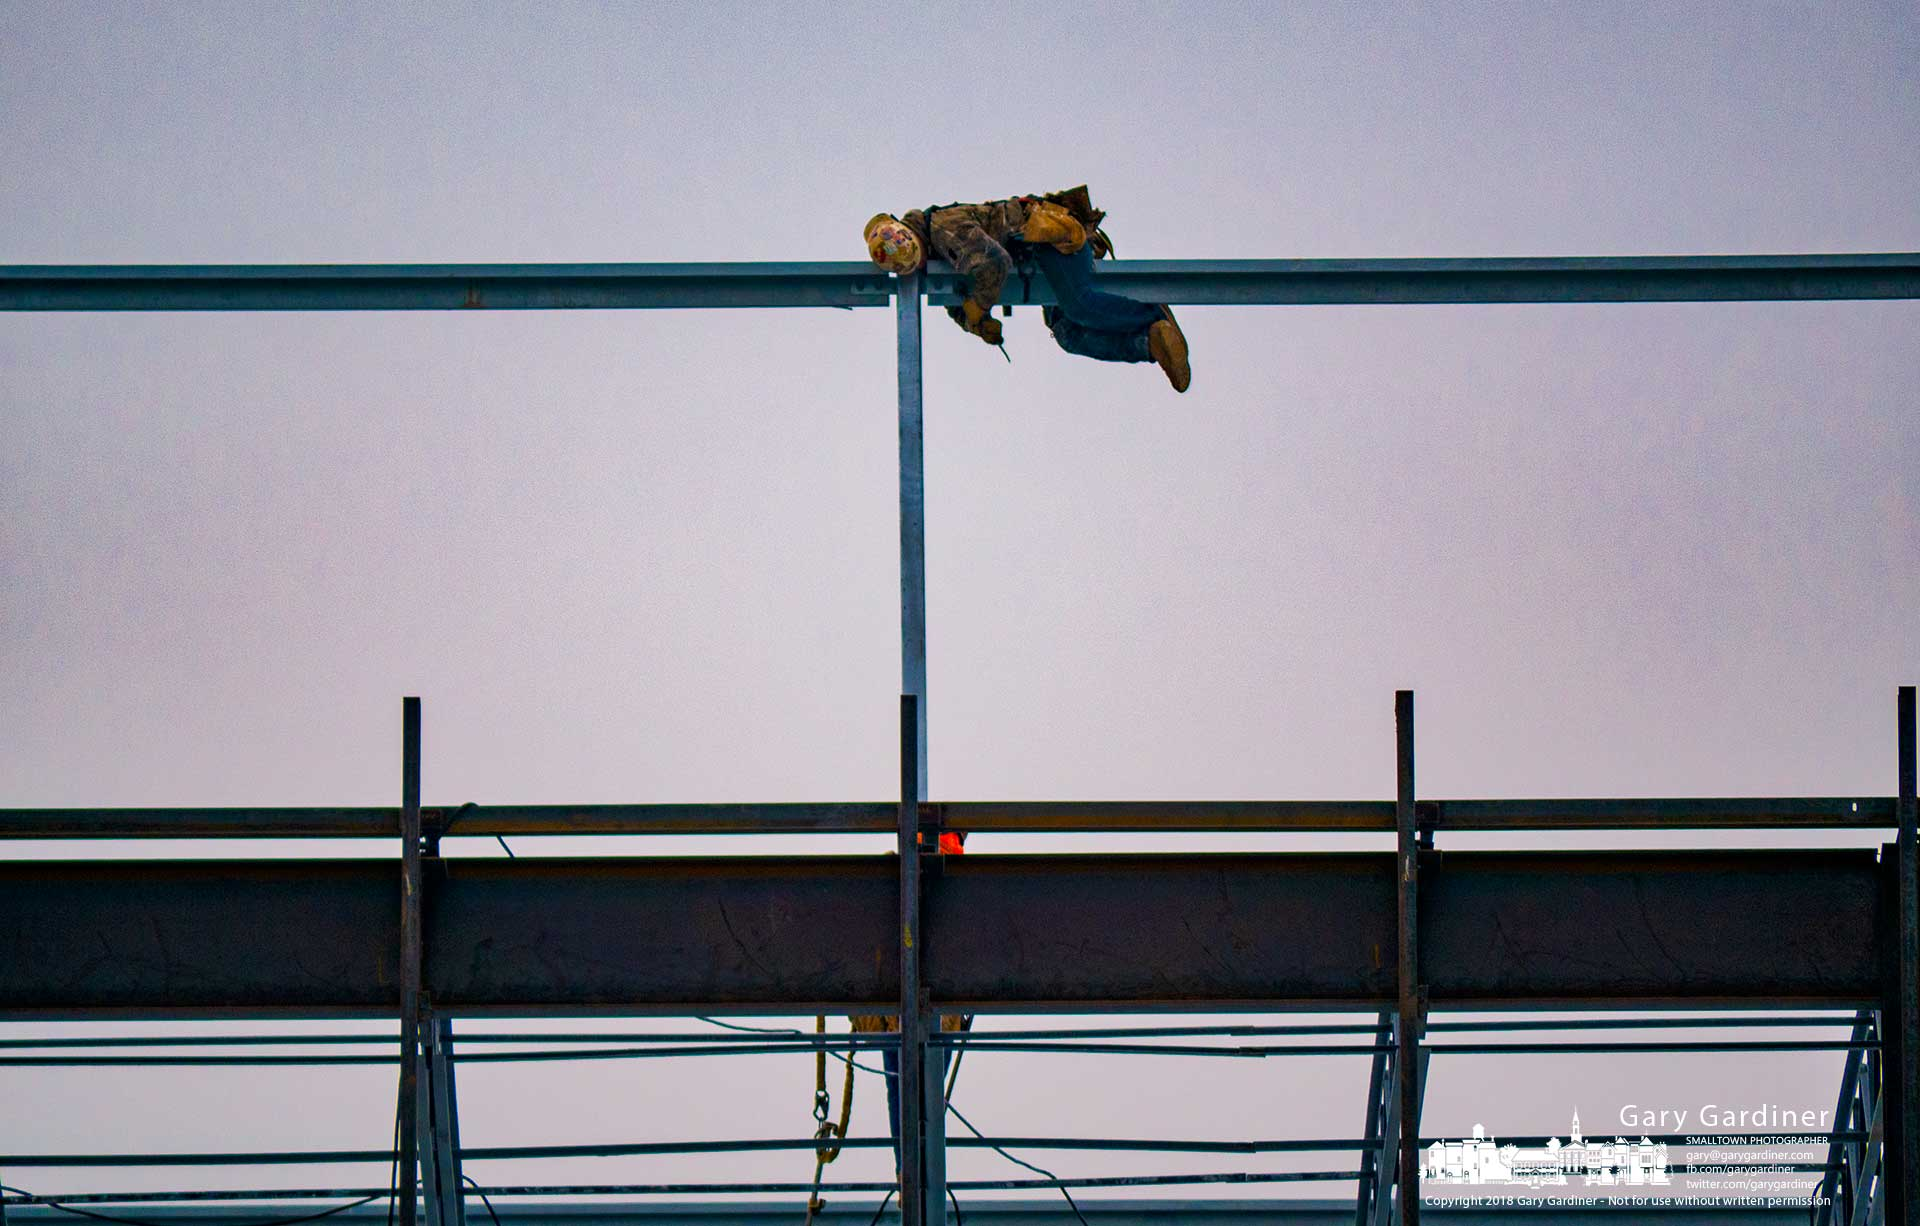 A steelworker bends beneath a steel beam to attach it to post at the DHL building construction site. My Final Photo for Dec. 10, 2018.